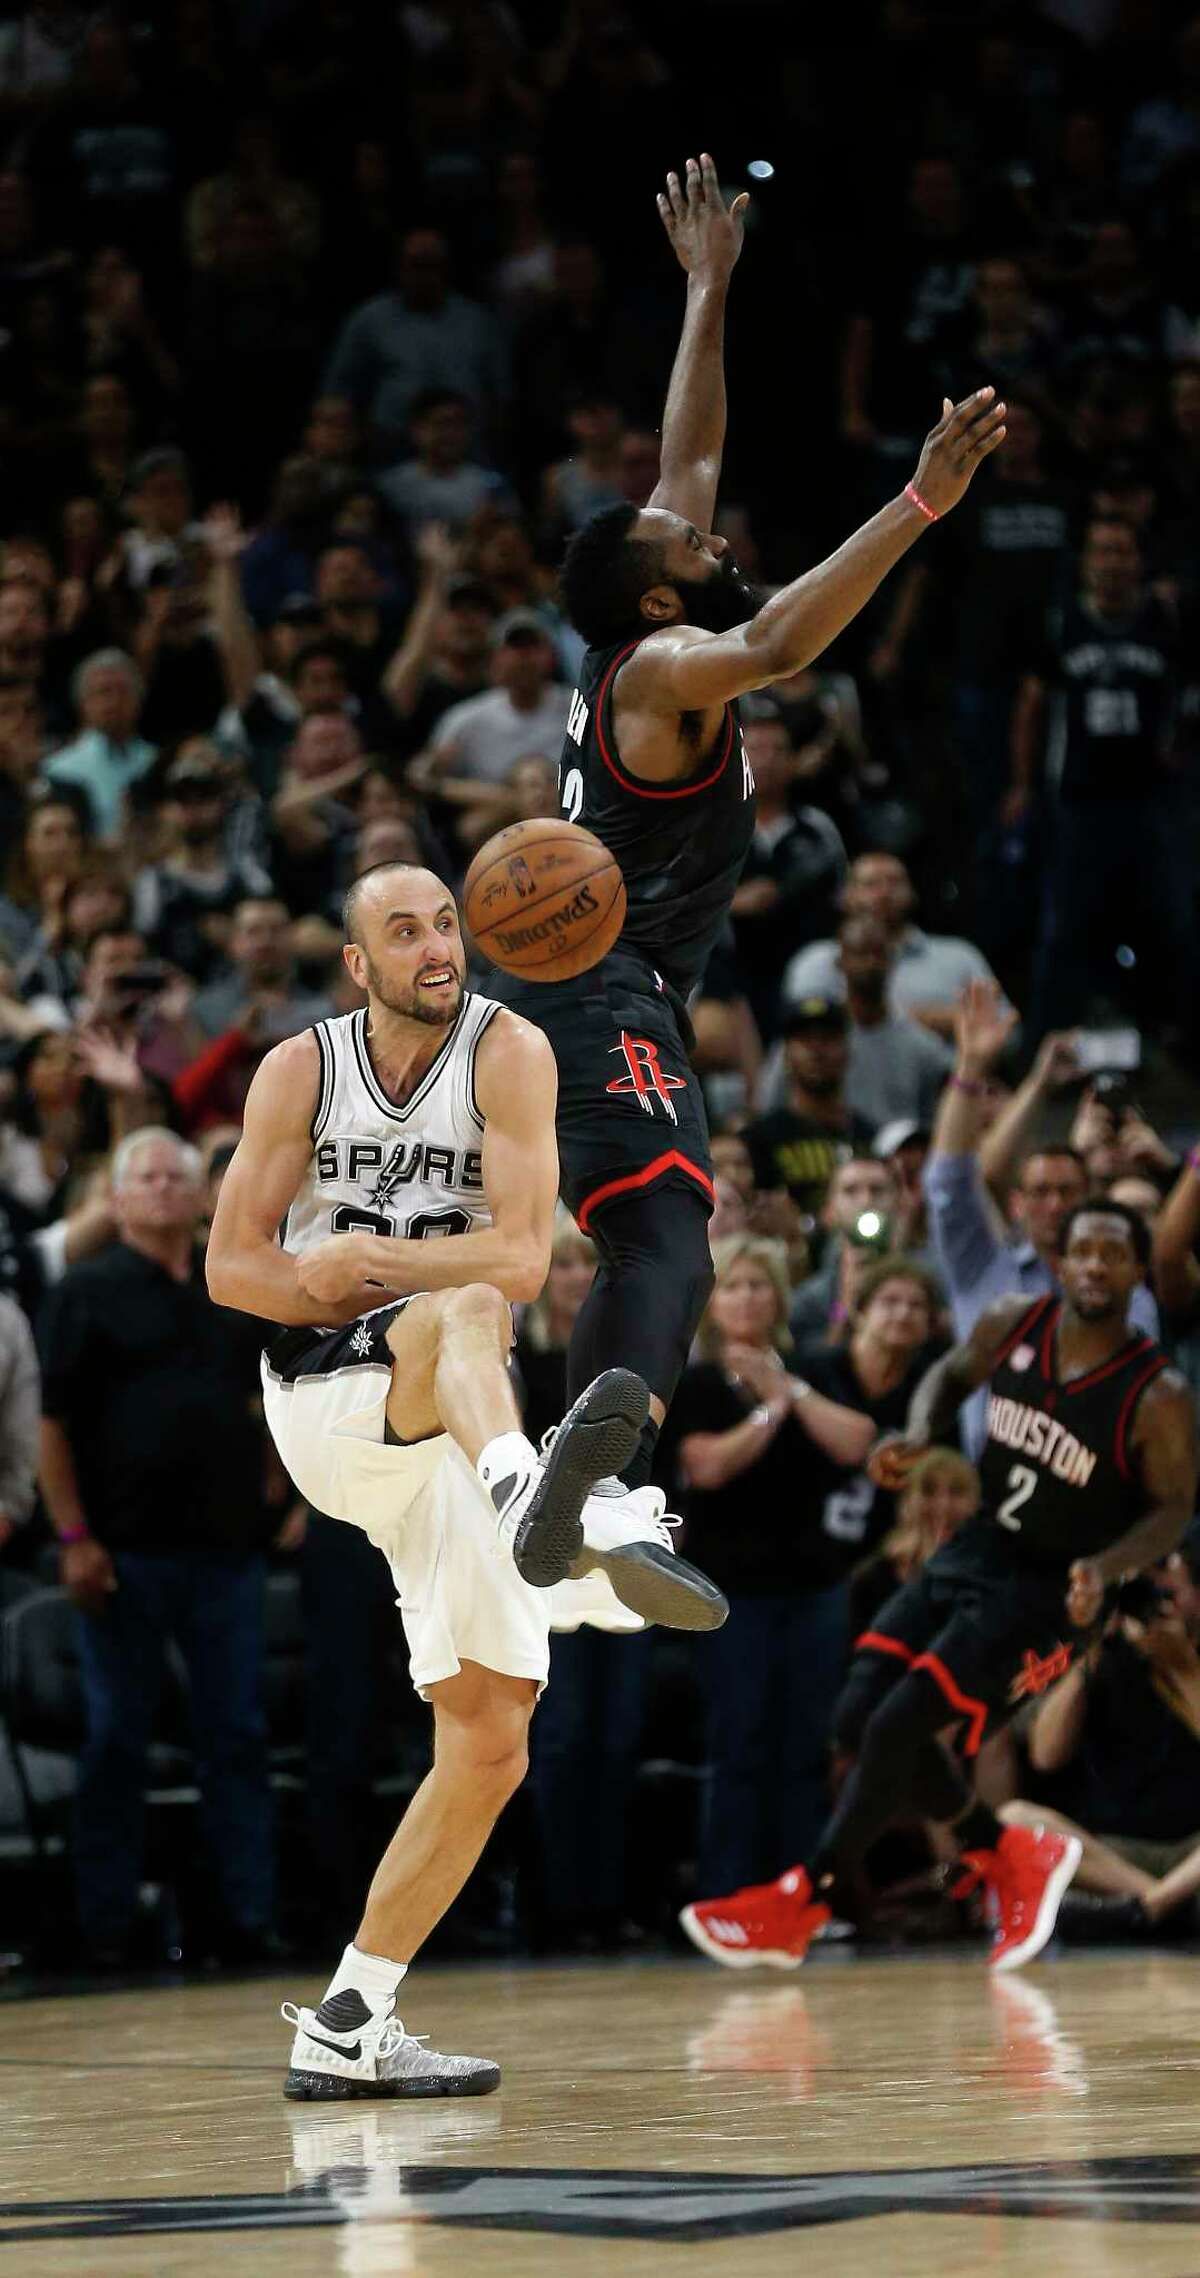 San Antonio Spurs guard Manu Ginobili (20) swats the ball from Houston Rockets guard James Harden (13) in the final seconds during overtime of Game 5 of the second round of the Western Conference NBA playoffs at AT&T Center, Tuesday, May 9, 2017, in San Antonio. ( Karen Warren / Houston Chronicle )